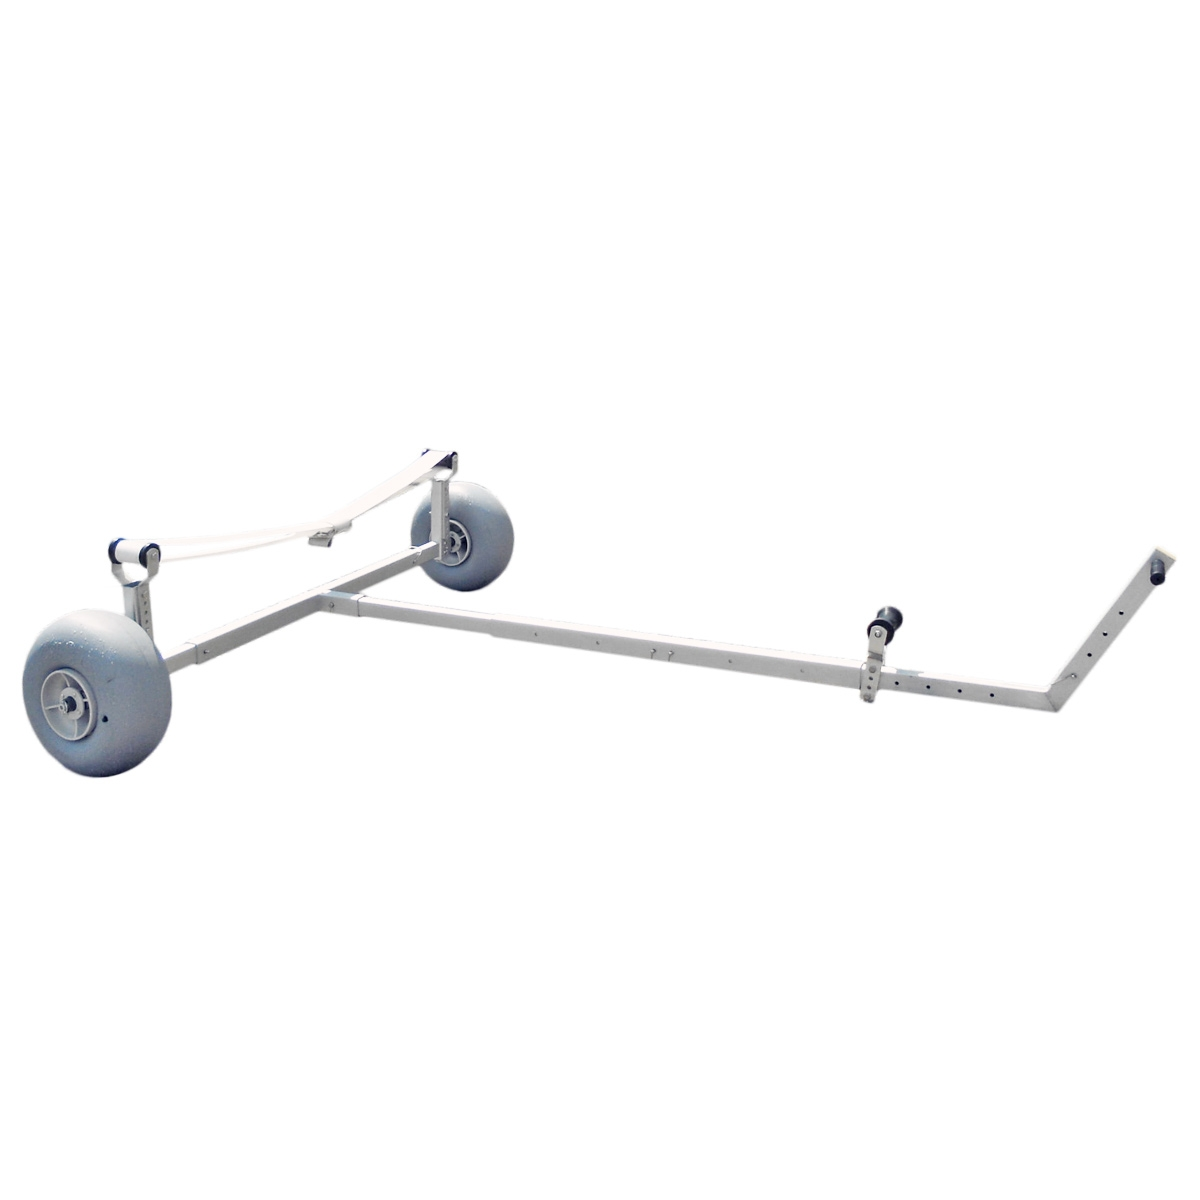 WheelEEZ Boat Trailer